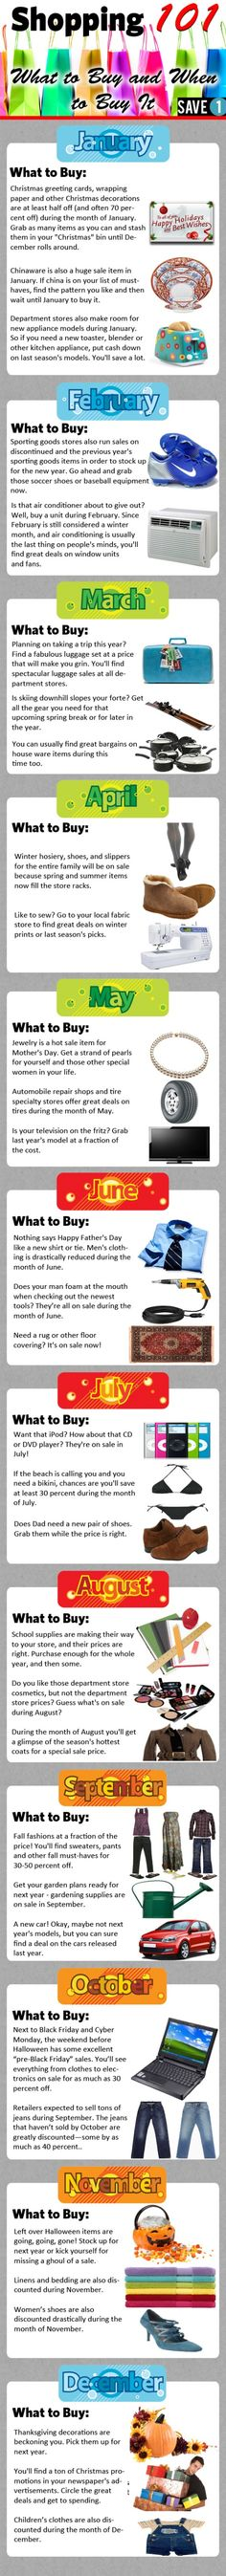 What to buy and When to buy it